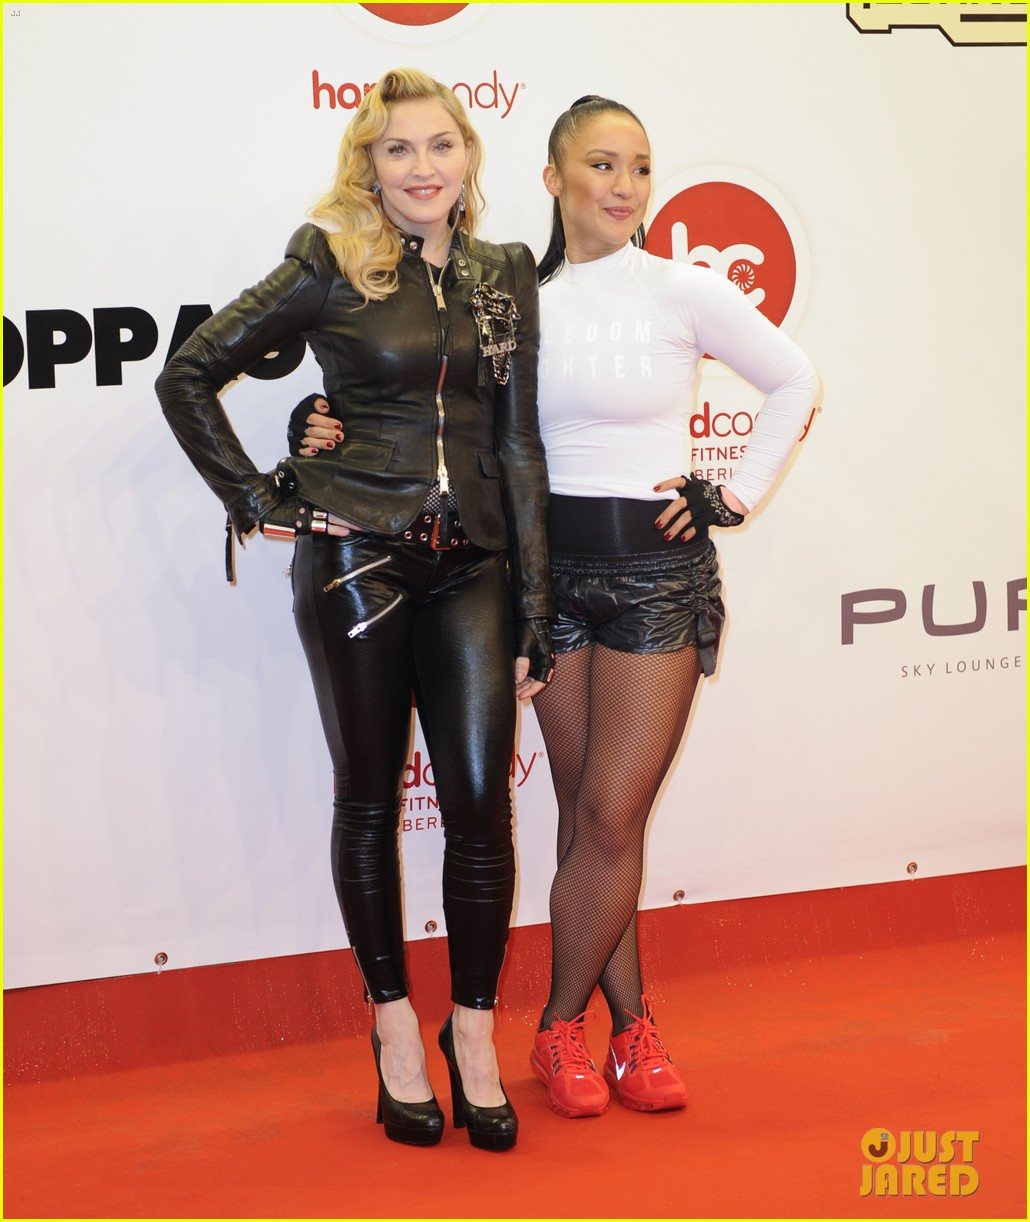 madonna hard candy fitness club opening in berlin 122973781